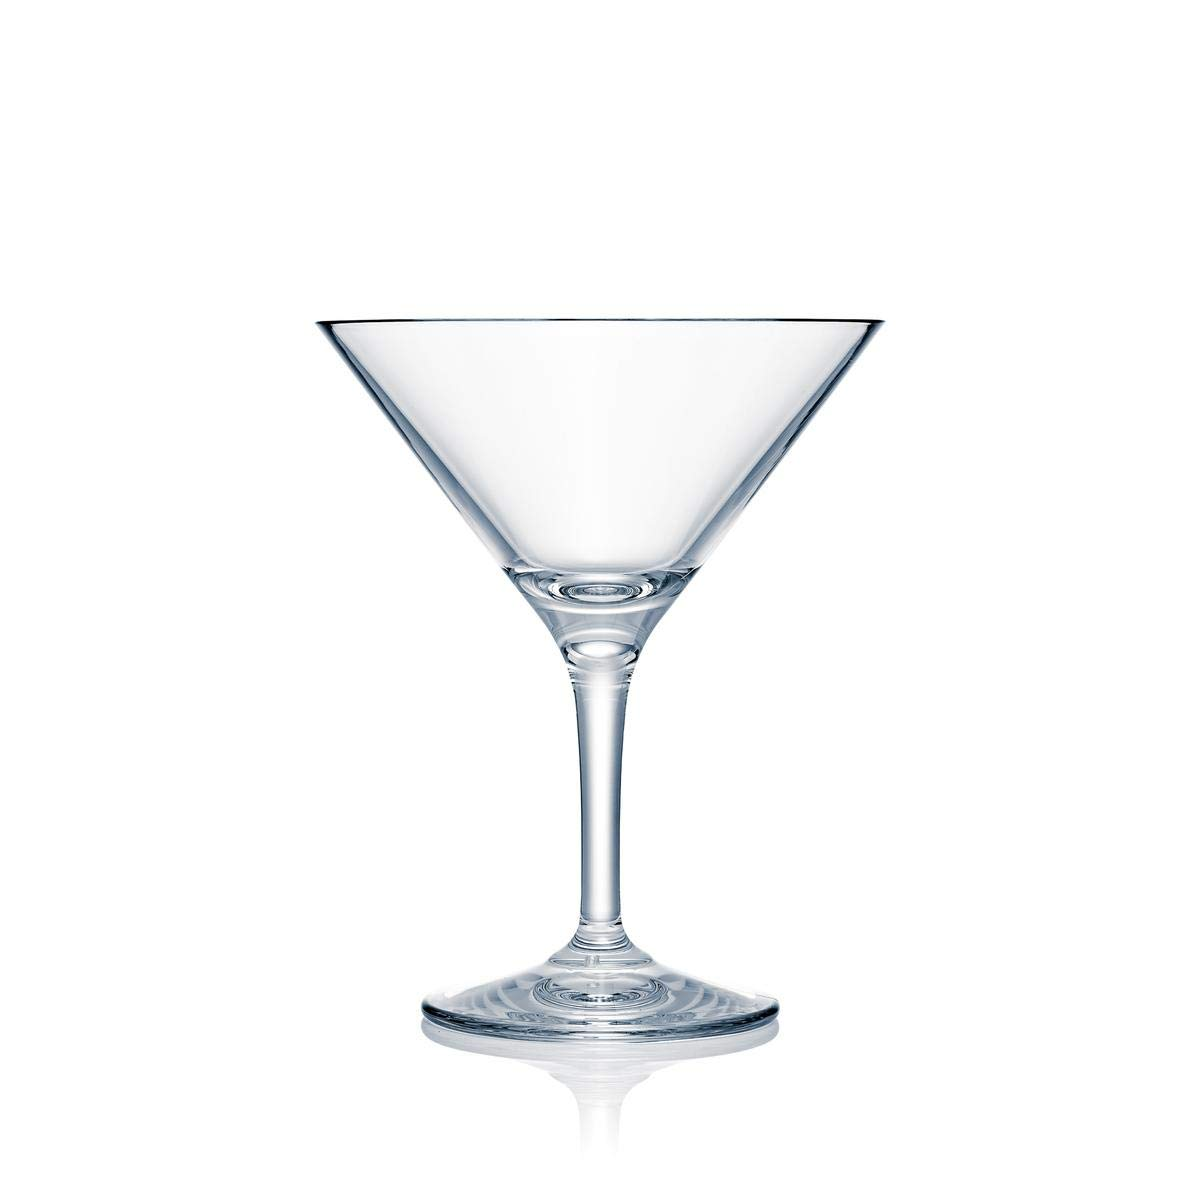 Strahl Design+Contemporary 12-oz Martini Glass, Set of 4